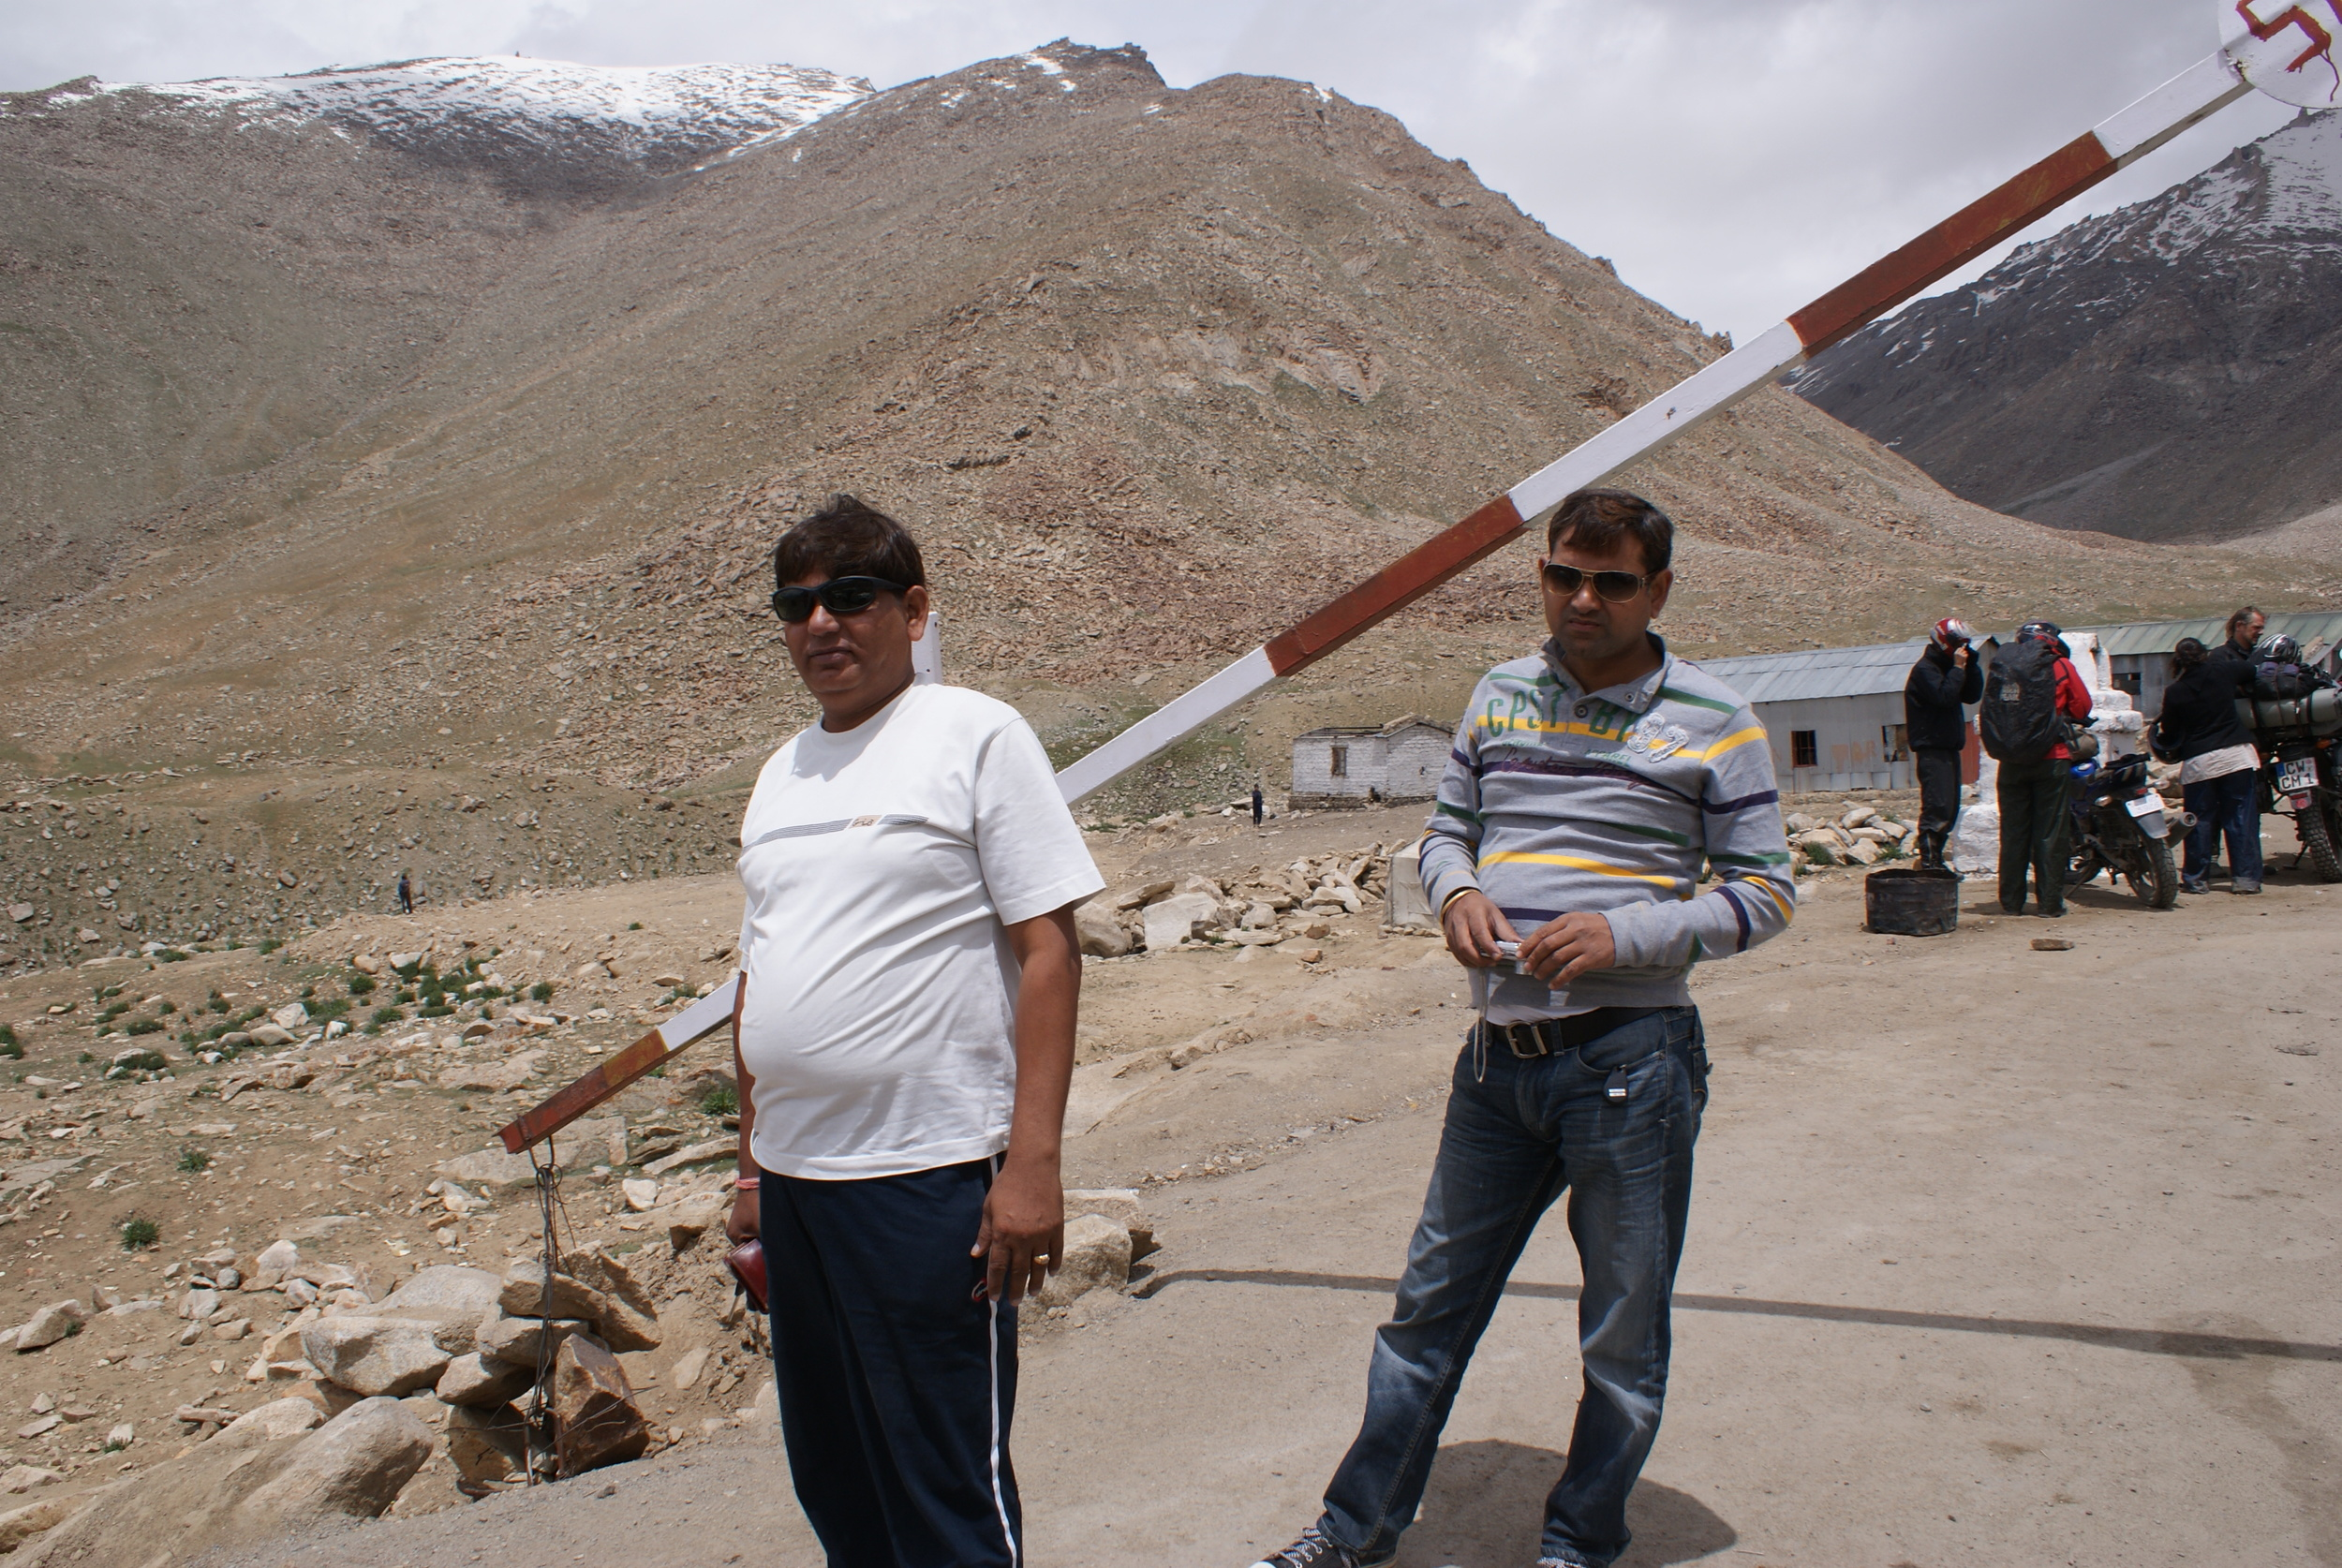 Sushil and Hitender, two of my three cousins, who made this event possible in the first place. As soon as I knew I was putting this together, I sat them down and told them that I need their help. They didn't hesitate one bit, even though you can see how fit they are. They were actually very fit in their hey days.